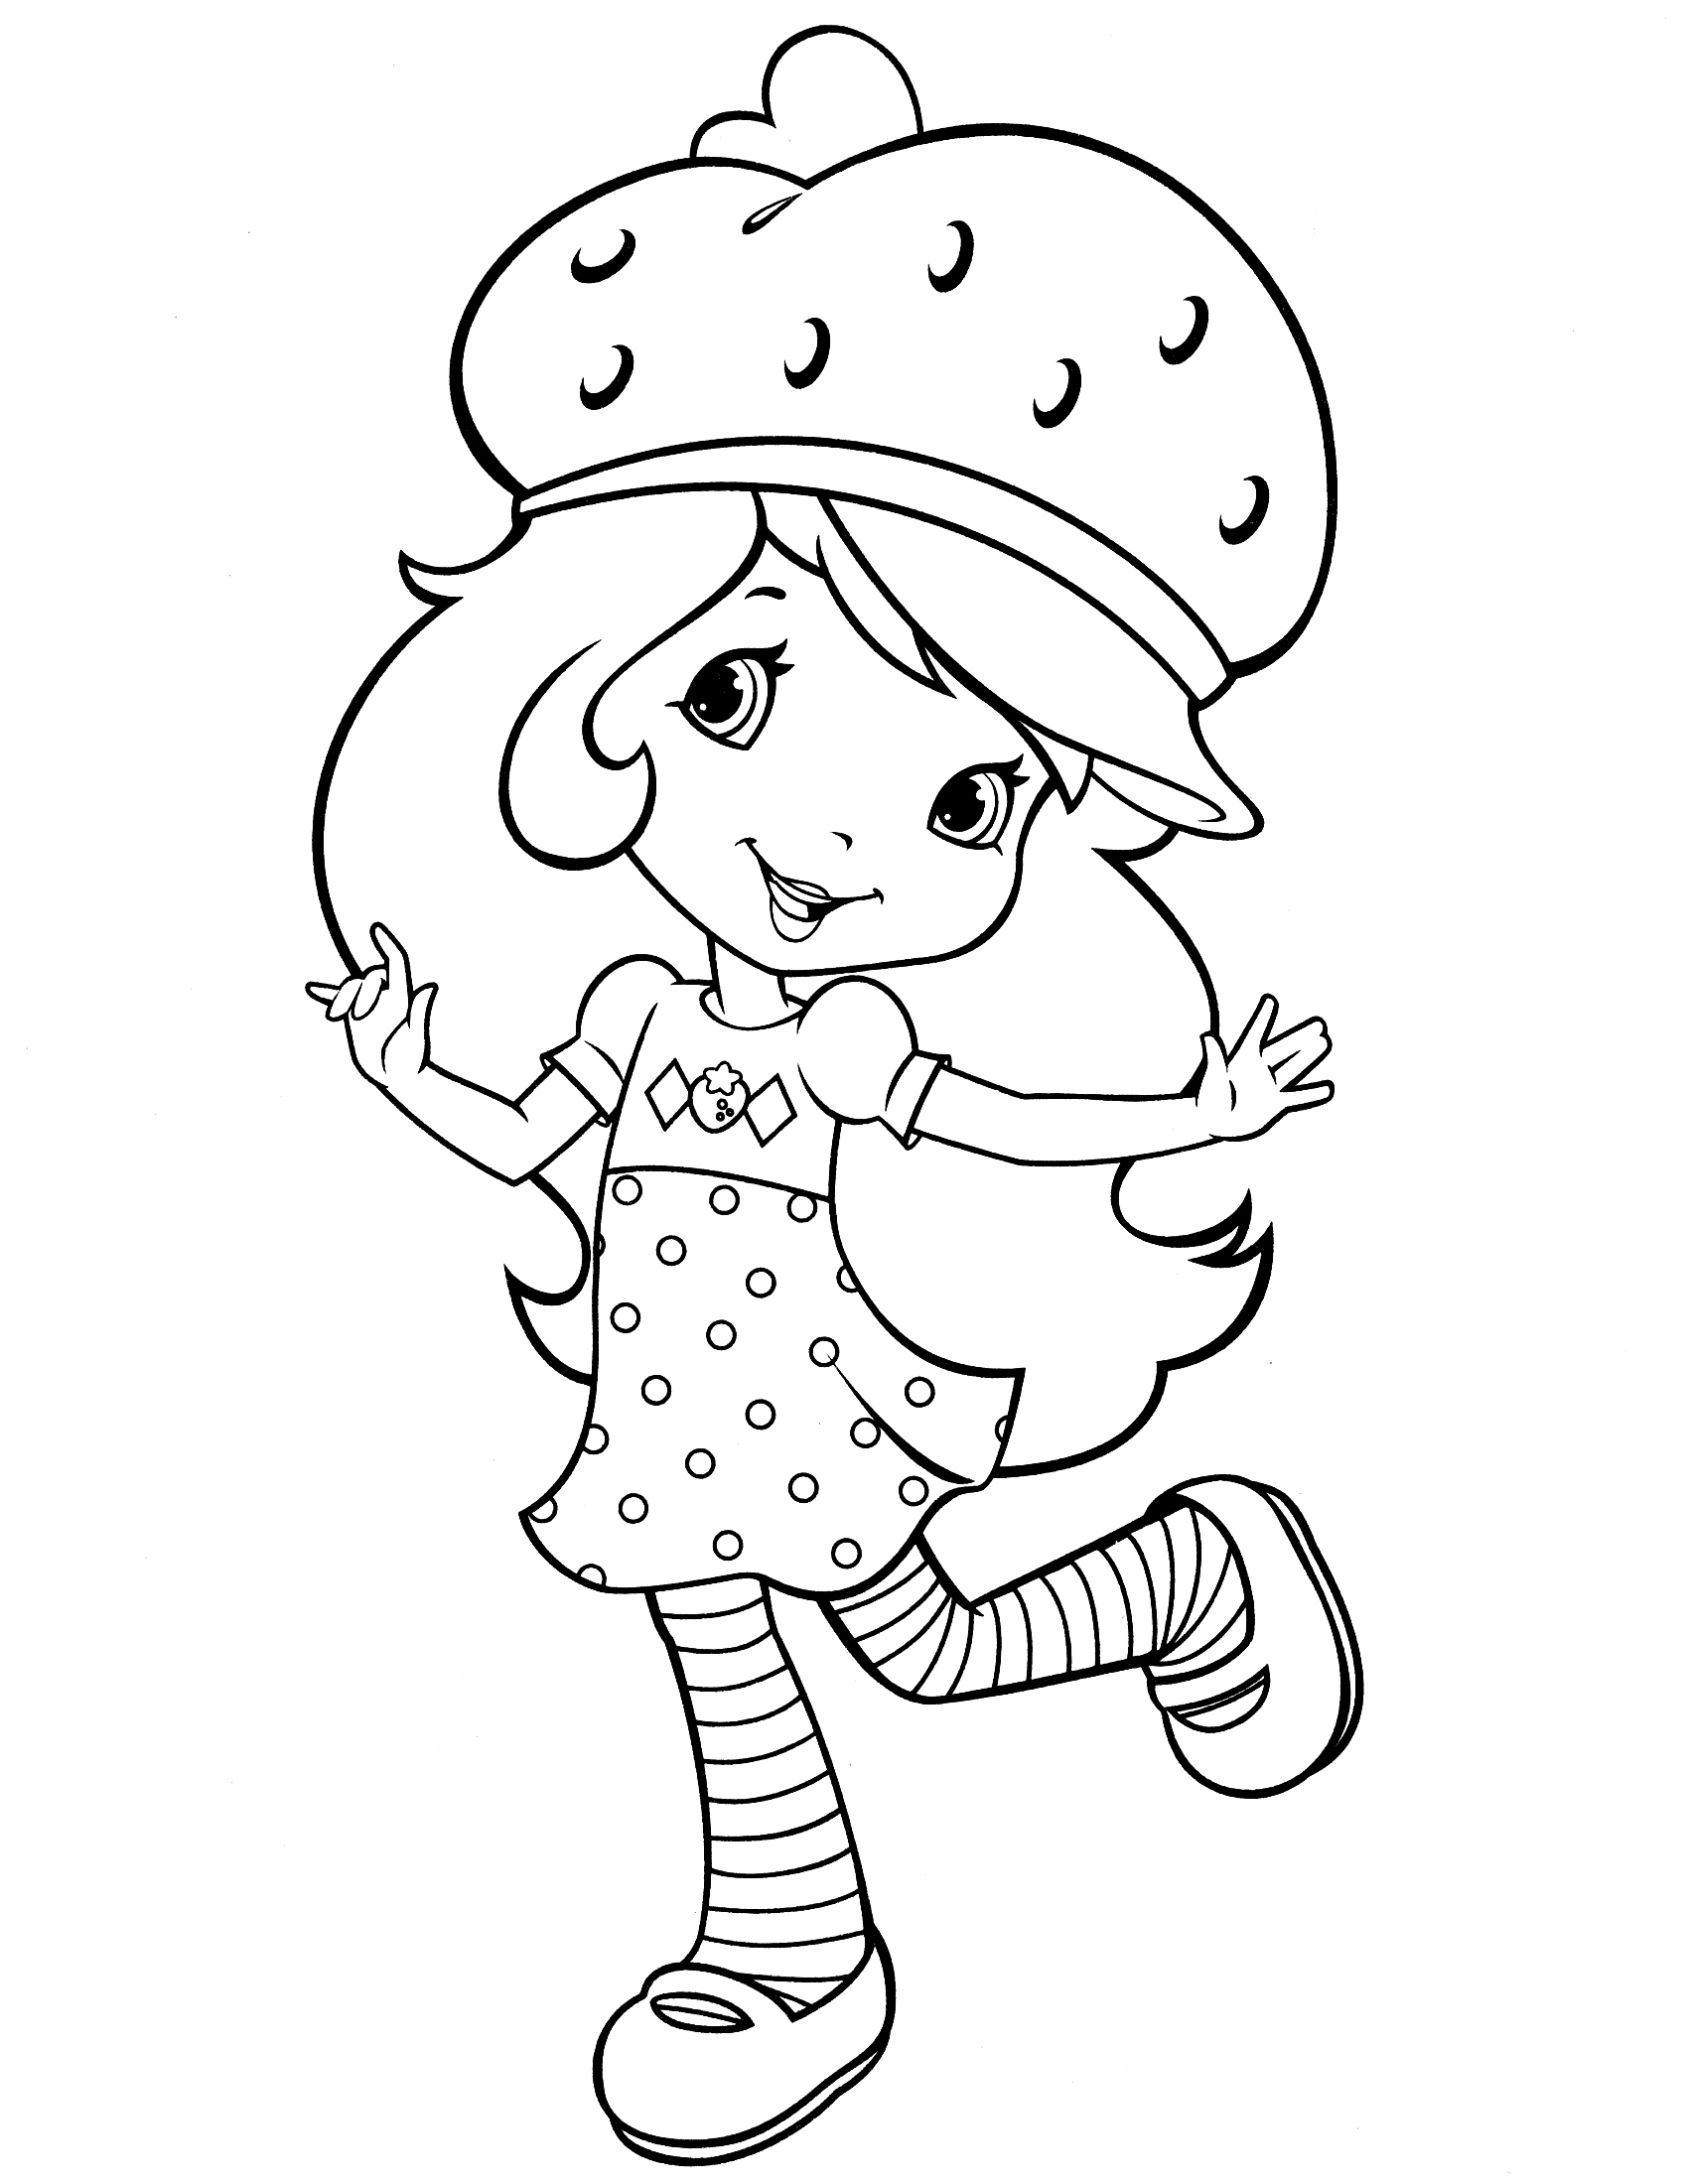 strawberry shortcake characters coloring pages strawberry shortcake and friends coloring pages coloring strawberry shortcake characters pages